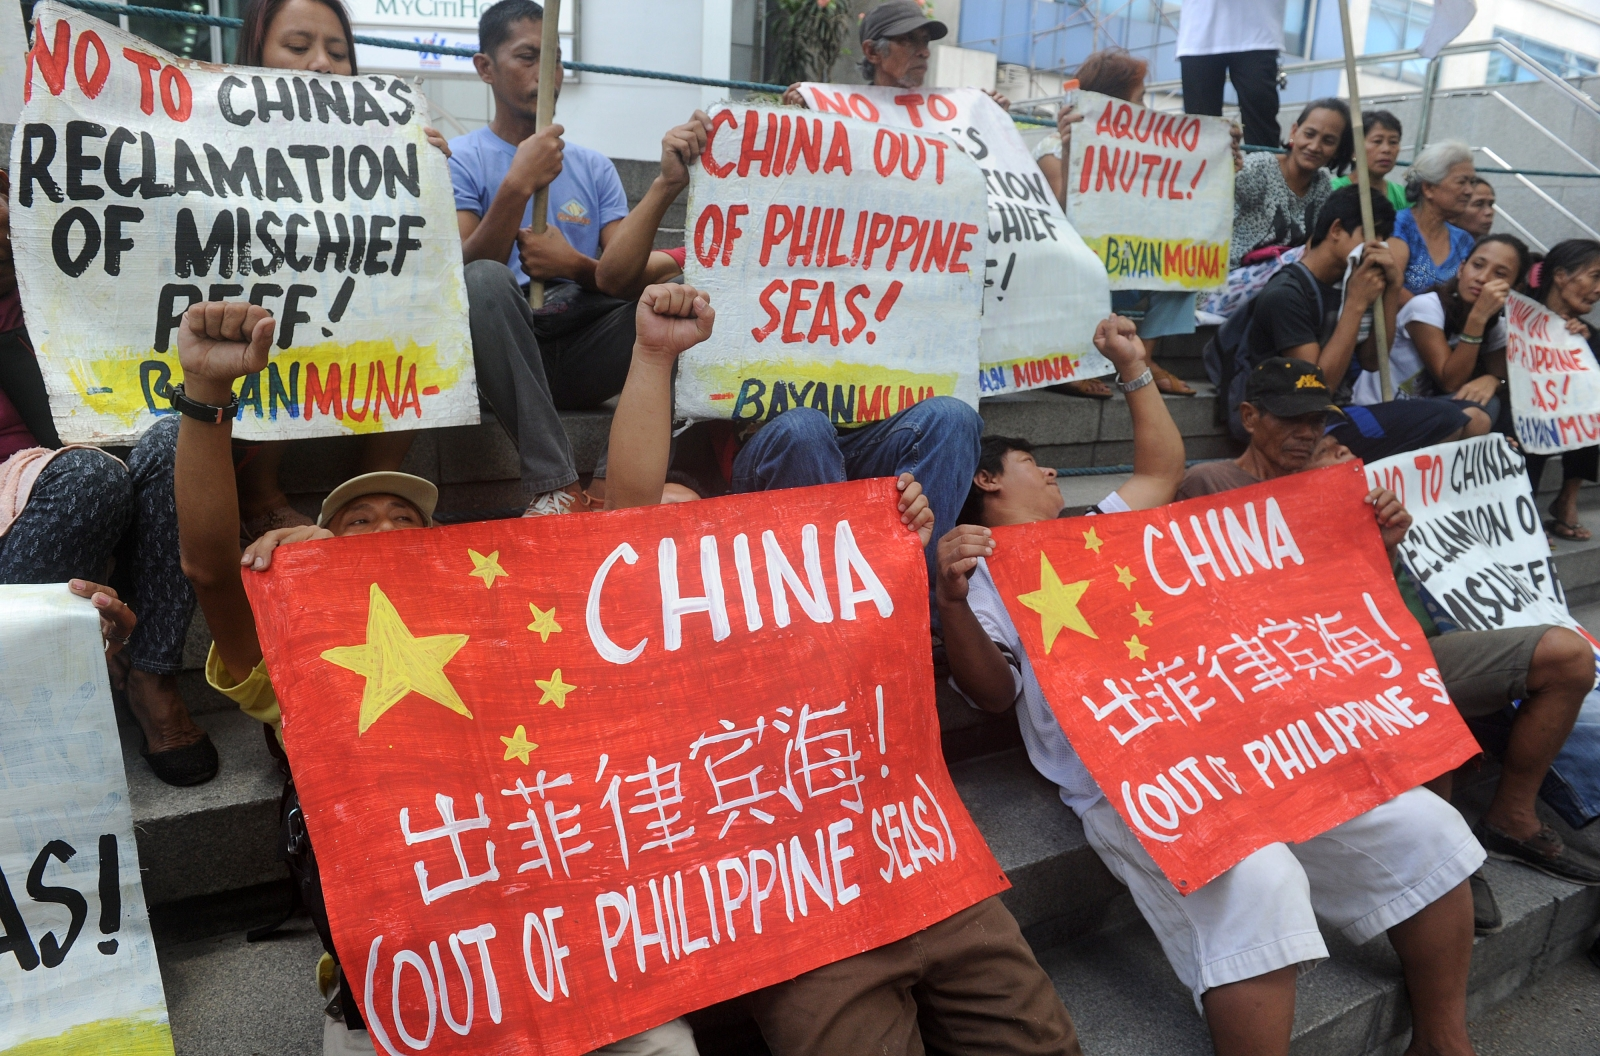 China-based hackers suspected in targeting Philippines DOJ over South China Sea dispute